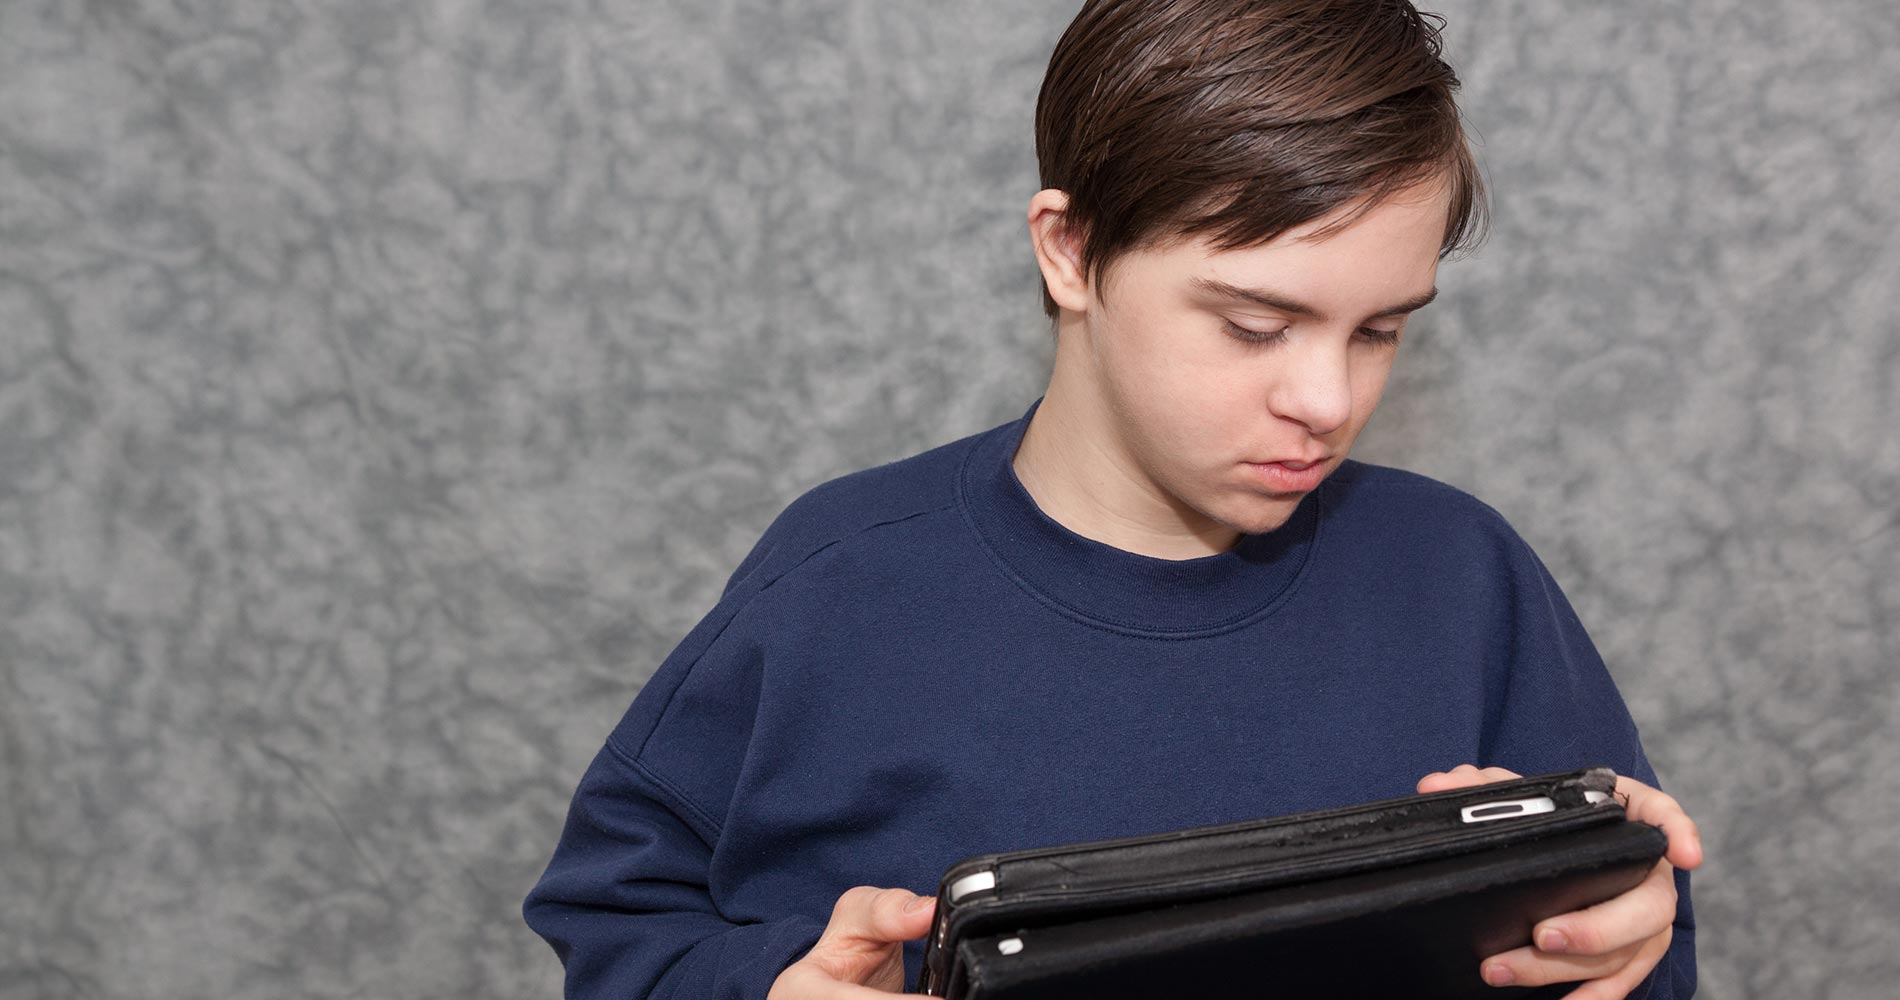 How Can Technology Improve the Learning Experience for Special Educational Needs Children?